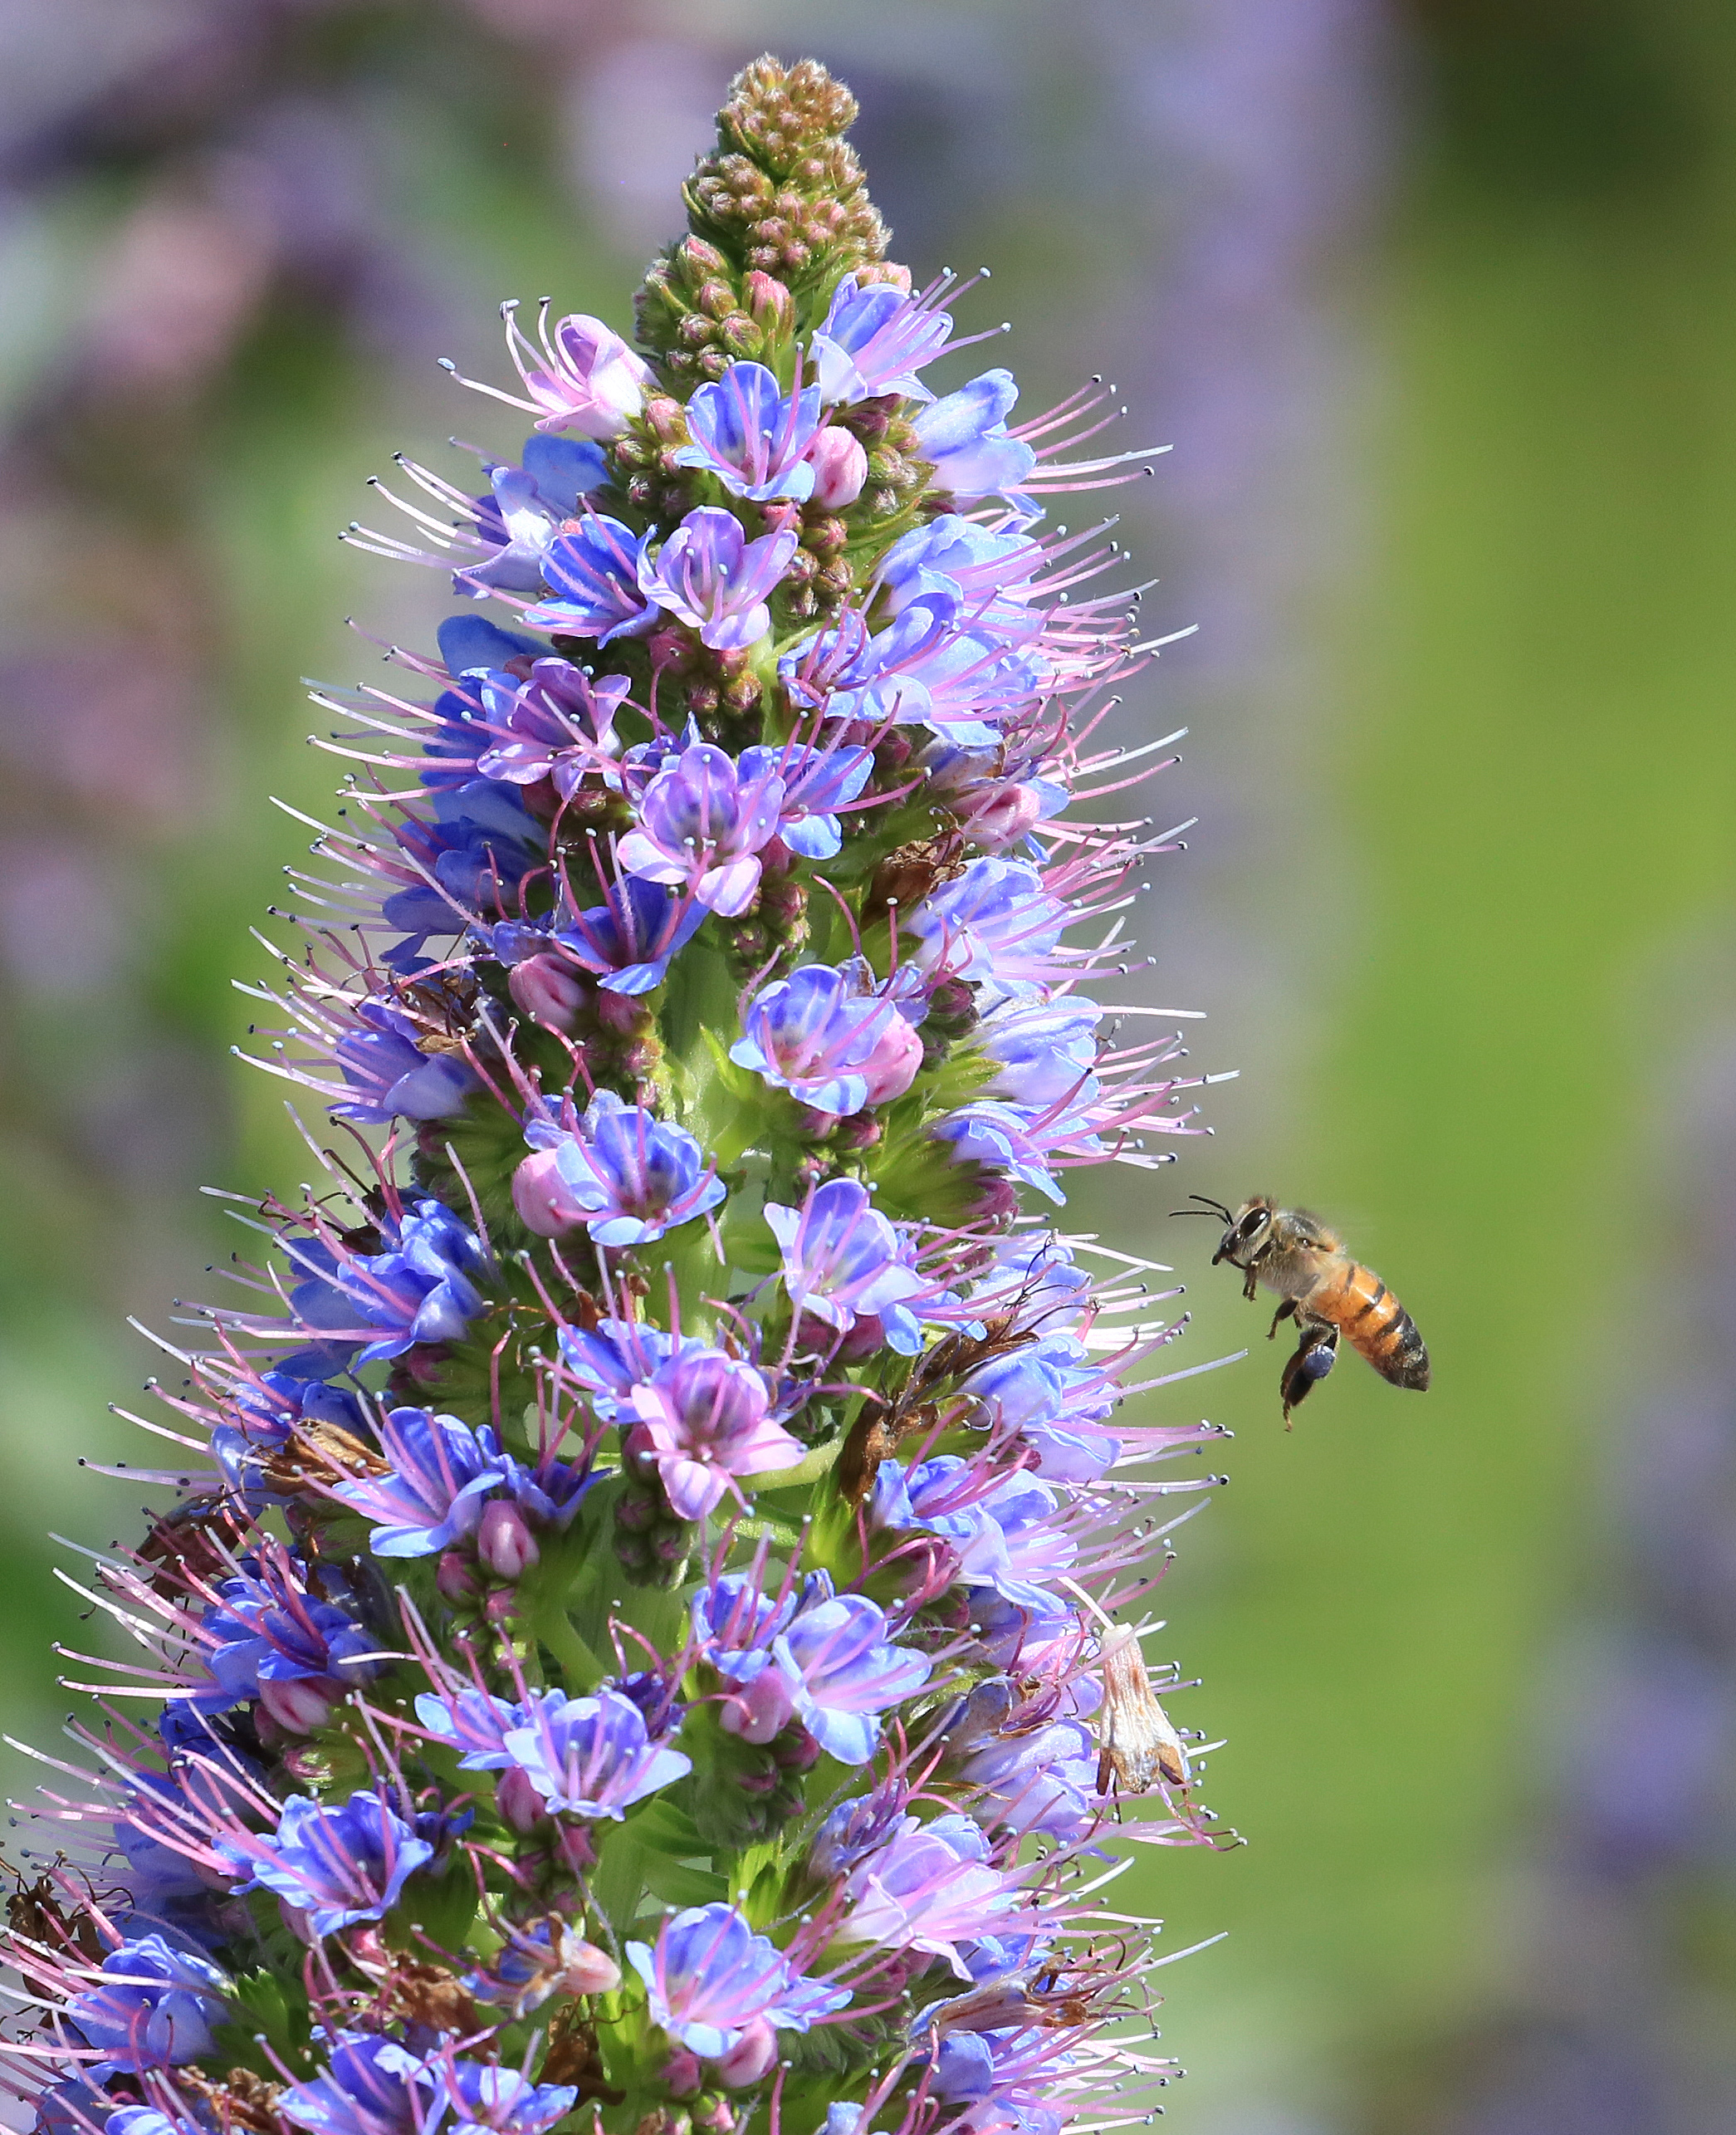 a honey bee hovers by flowers